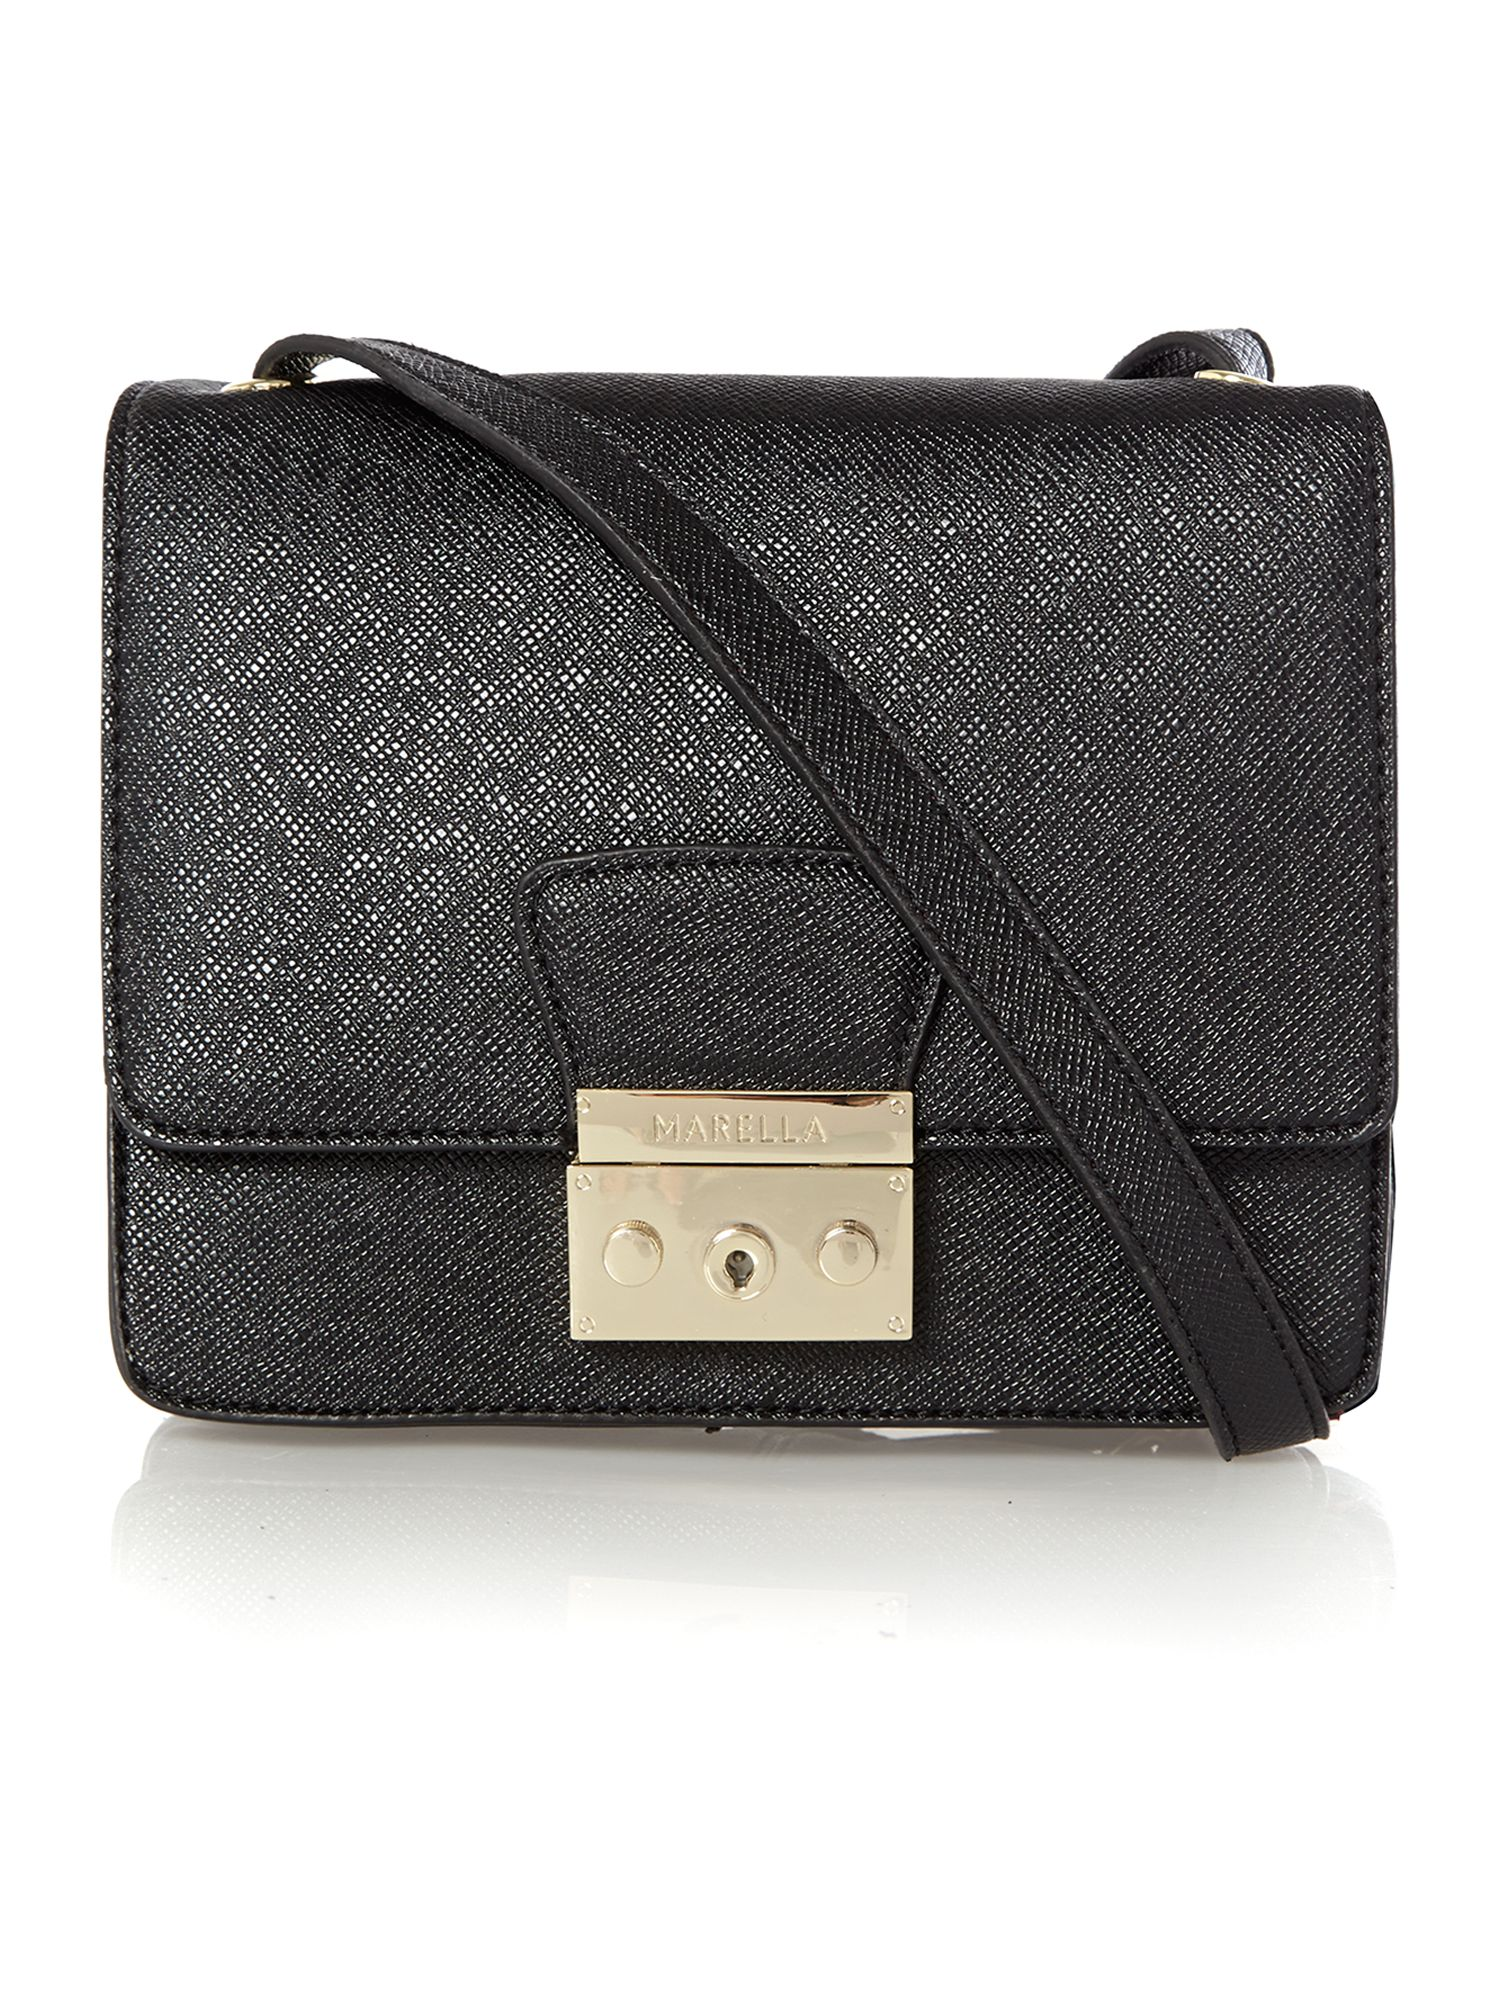 Black small saffiano flapover cross body bag